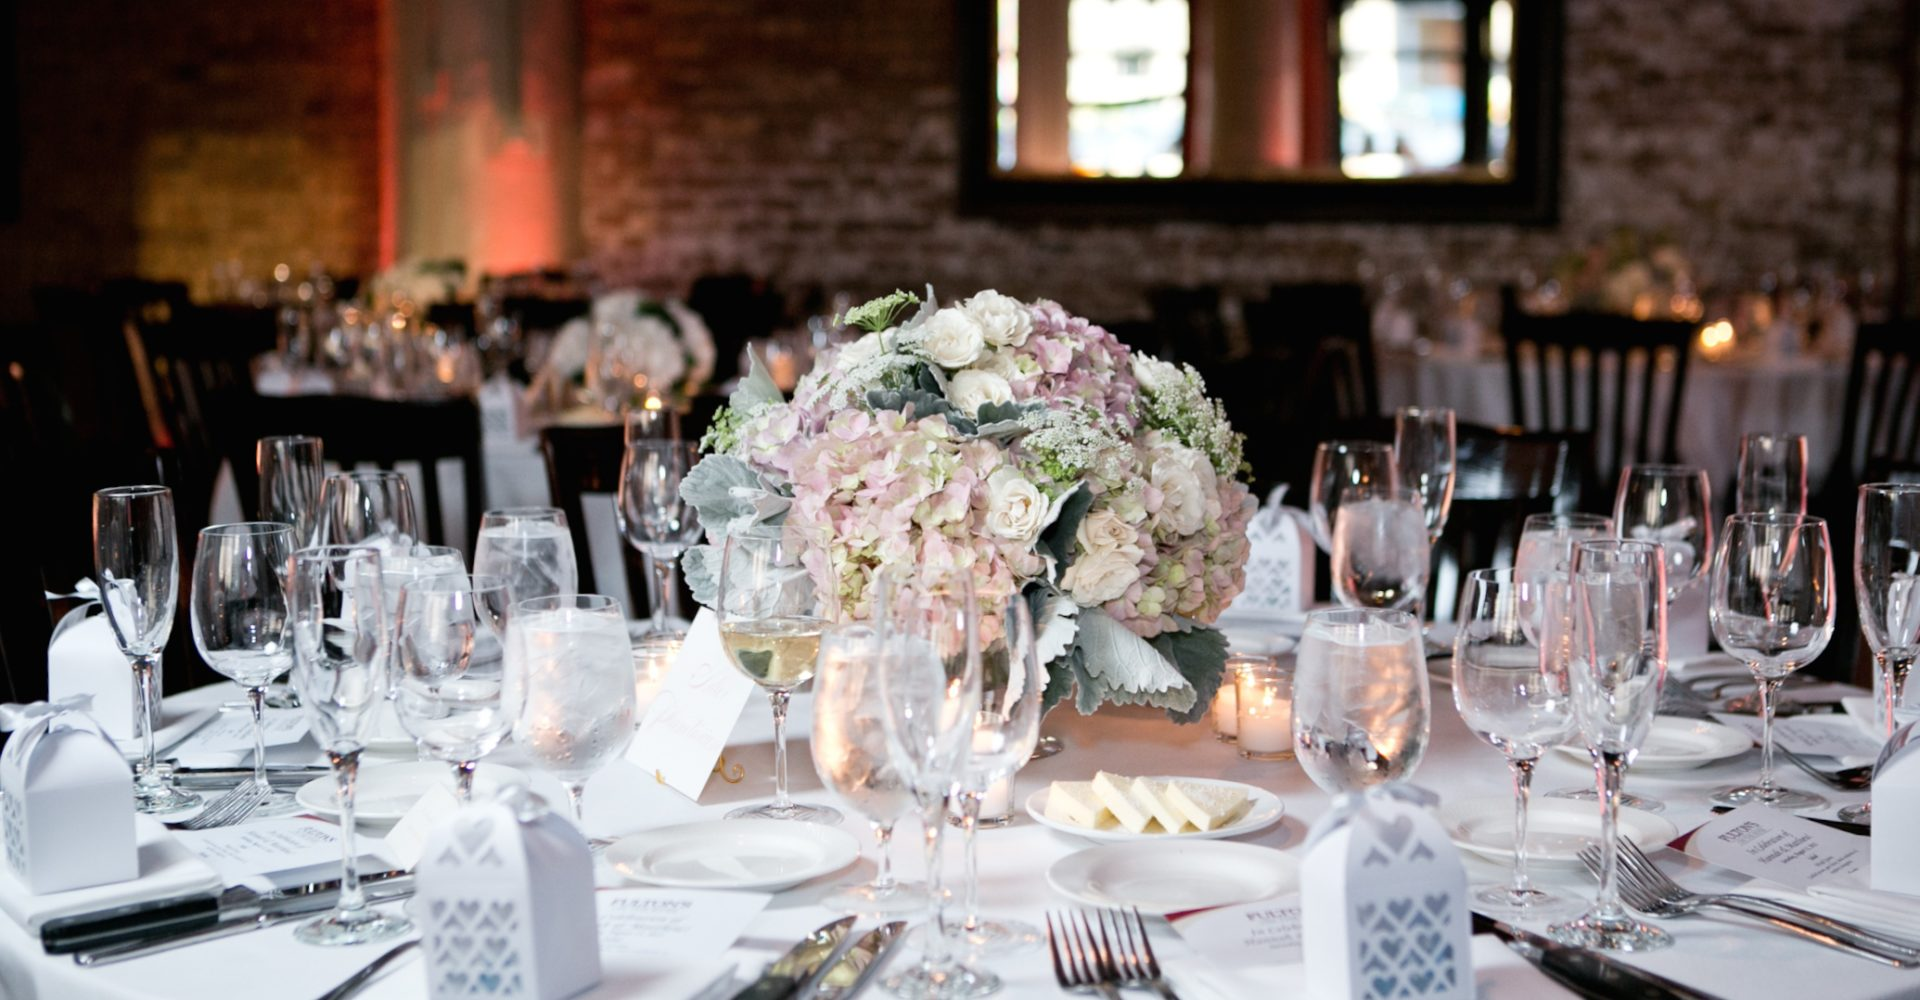 Ask Lh How Much Booze Do I Need For My Wedding: What Does It Take To Plan A Wedding?